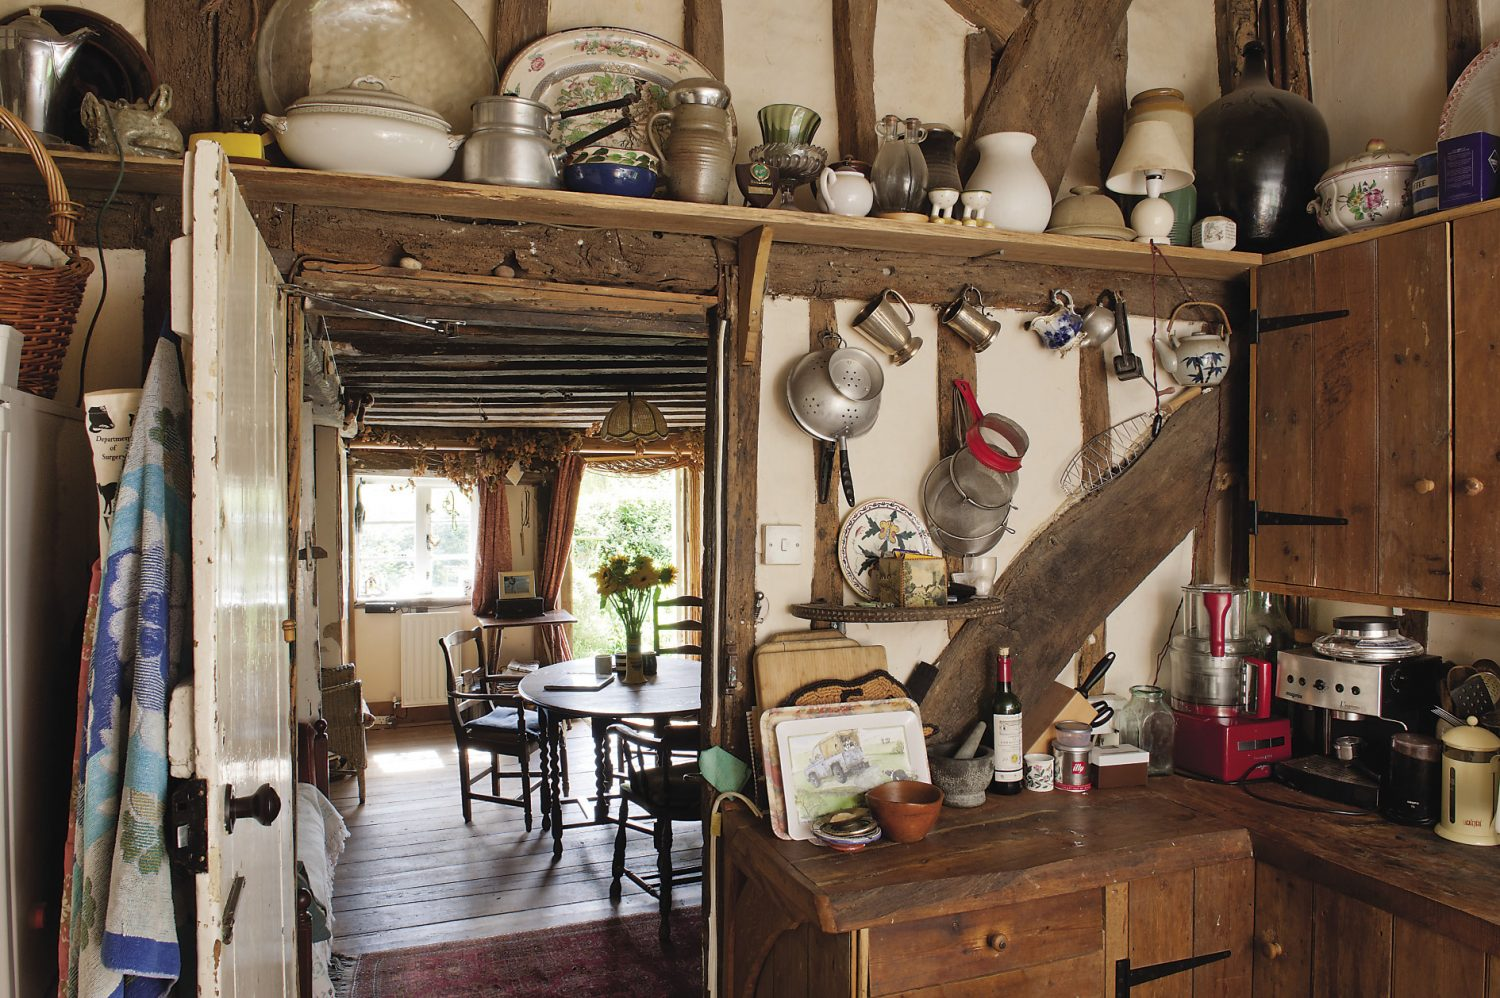 A door from what was once the medieval storeroom, now the dining room, leads into the kitchen